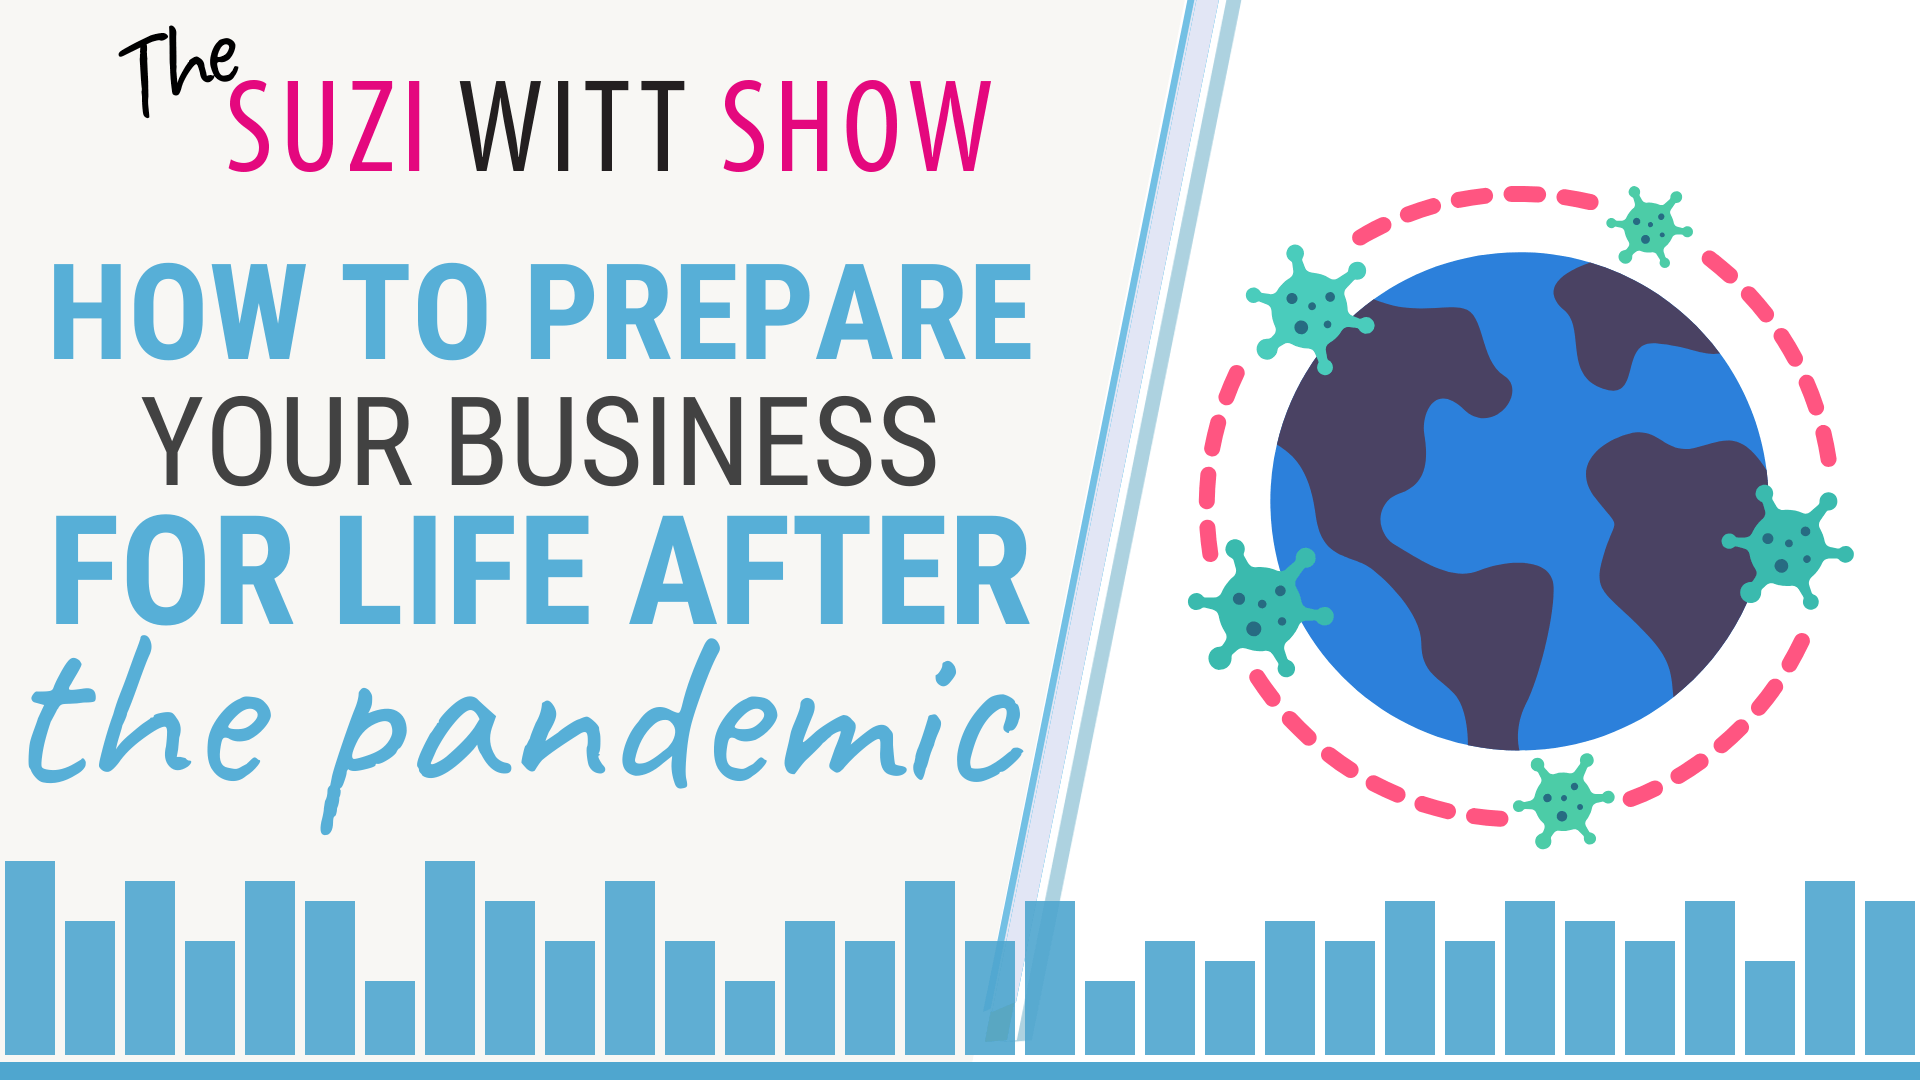 How to Prepare Your Business for Life AFTER the Pandemic